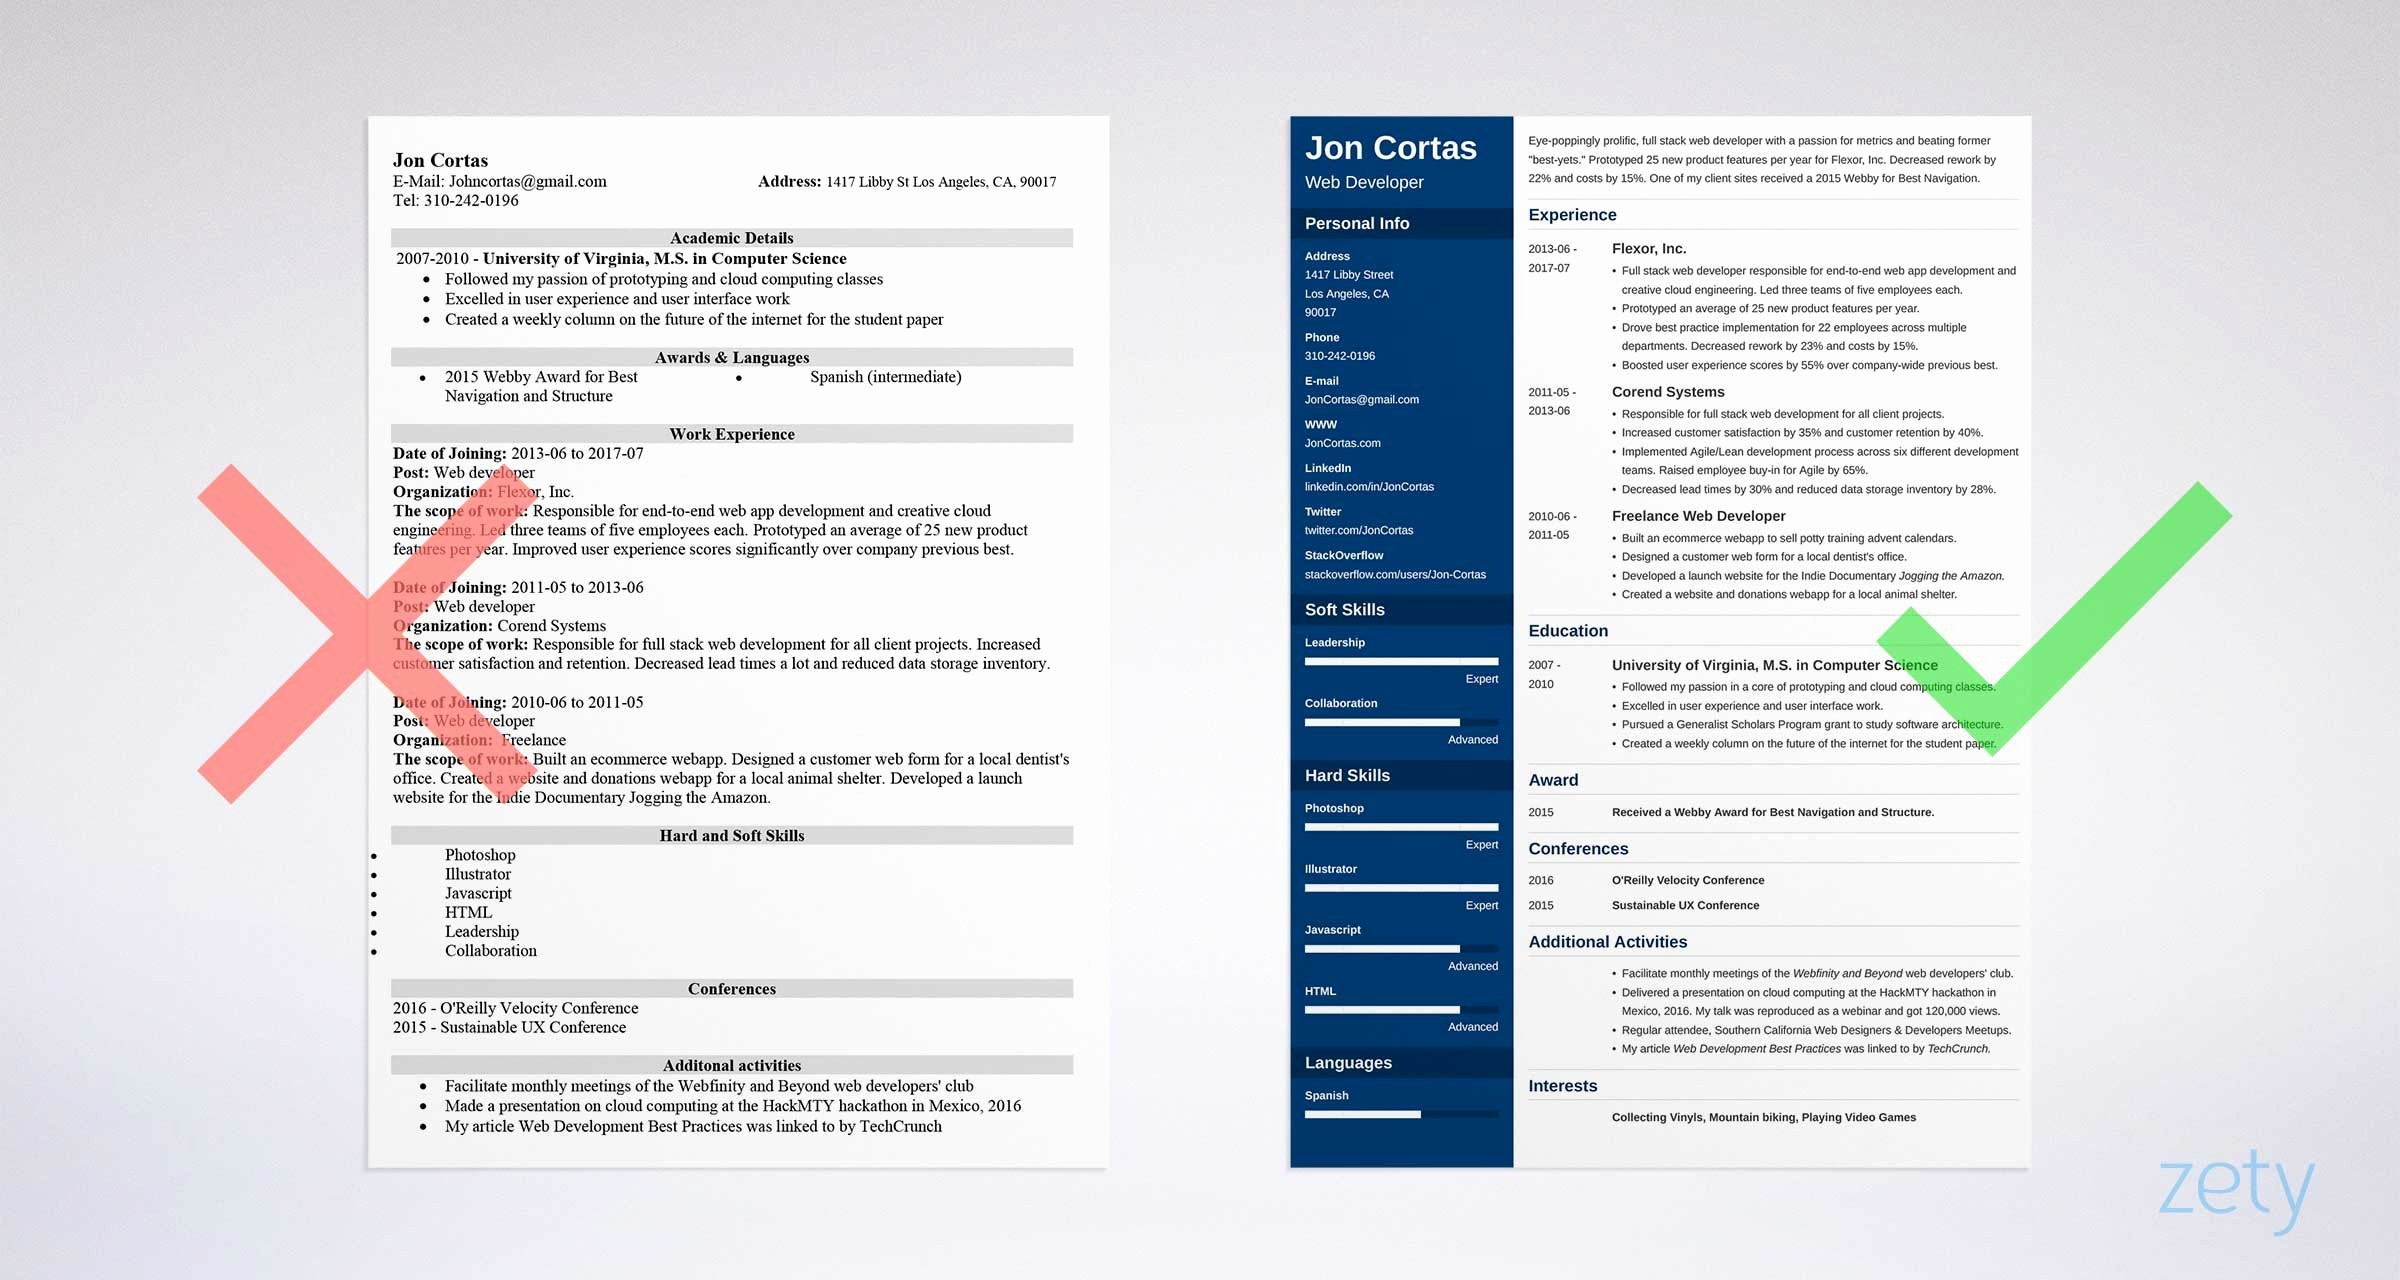 Best Resume Template Microsoft Word Elegant Free Resume Templates for Word 15 Cv Resume formats to